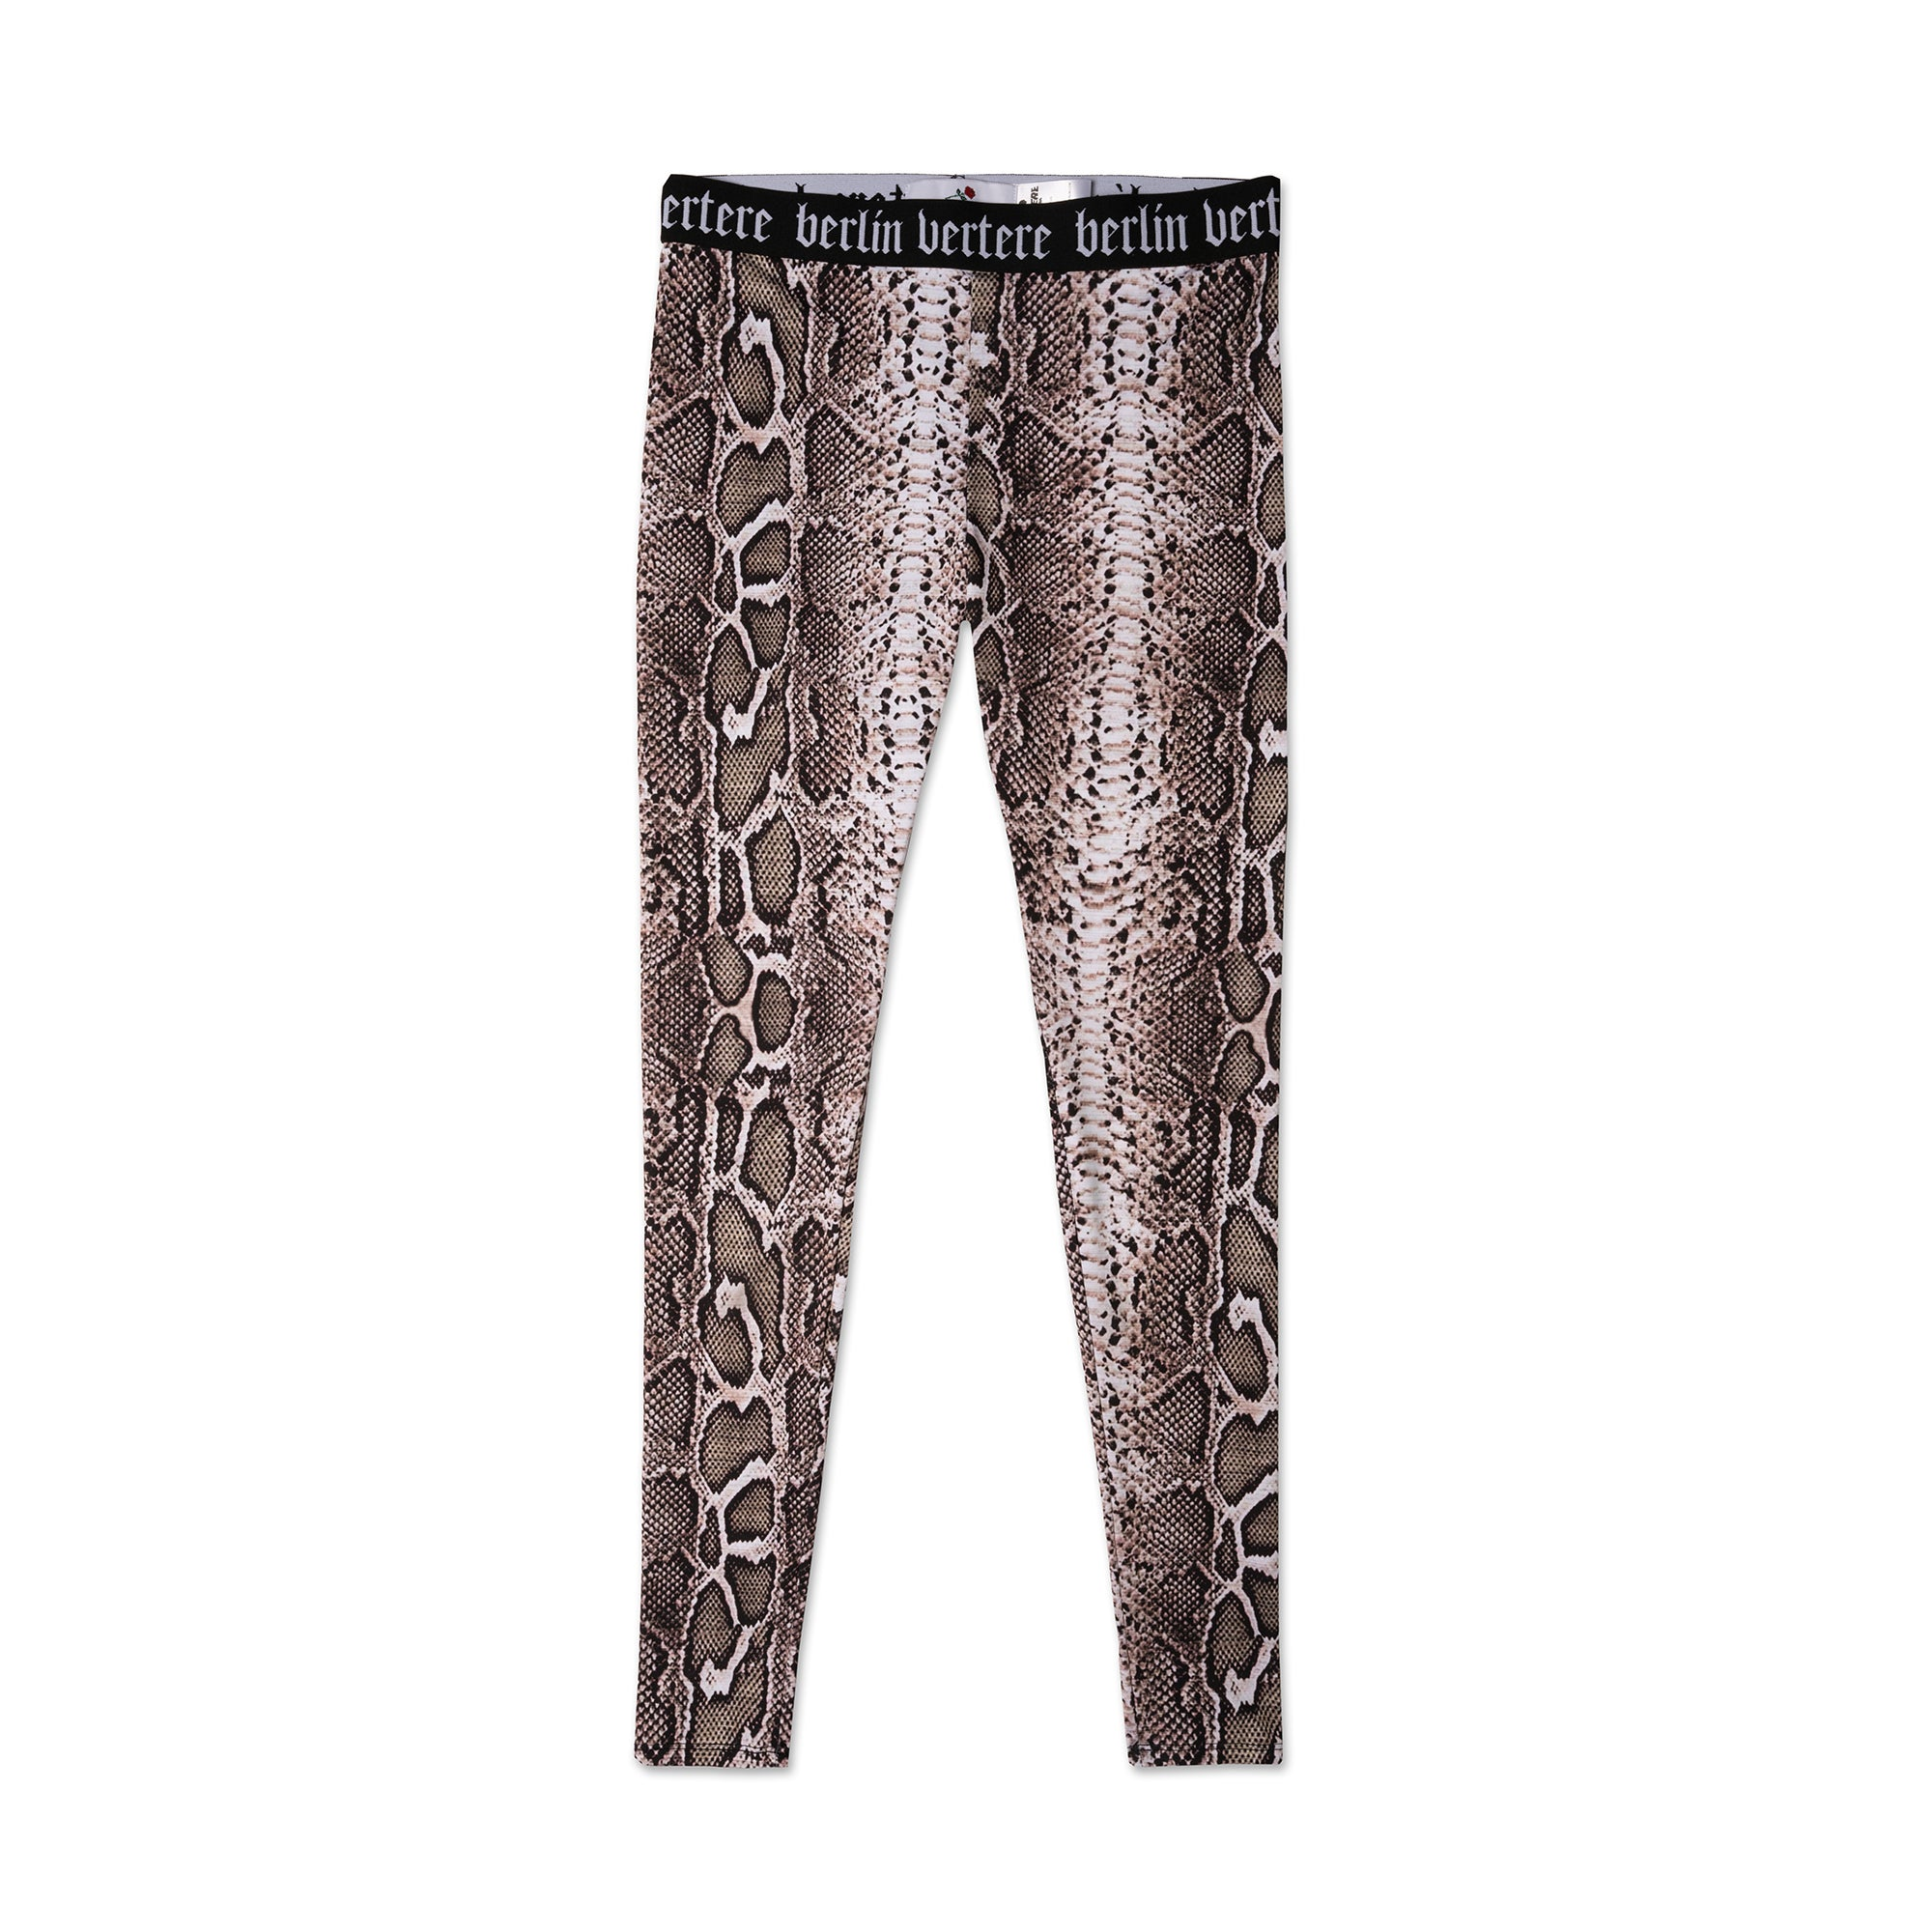 LADIES' LEGGINGS SNAKE - BLACK/BROWN